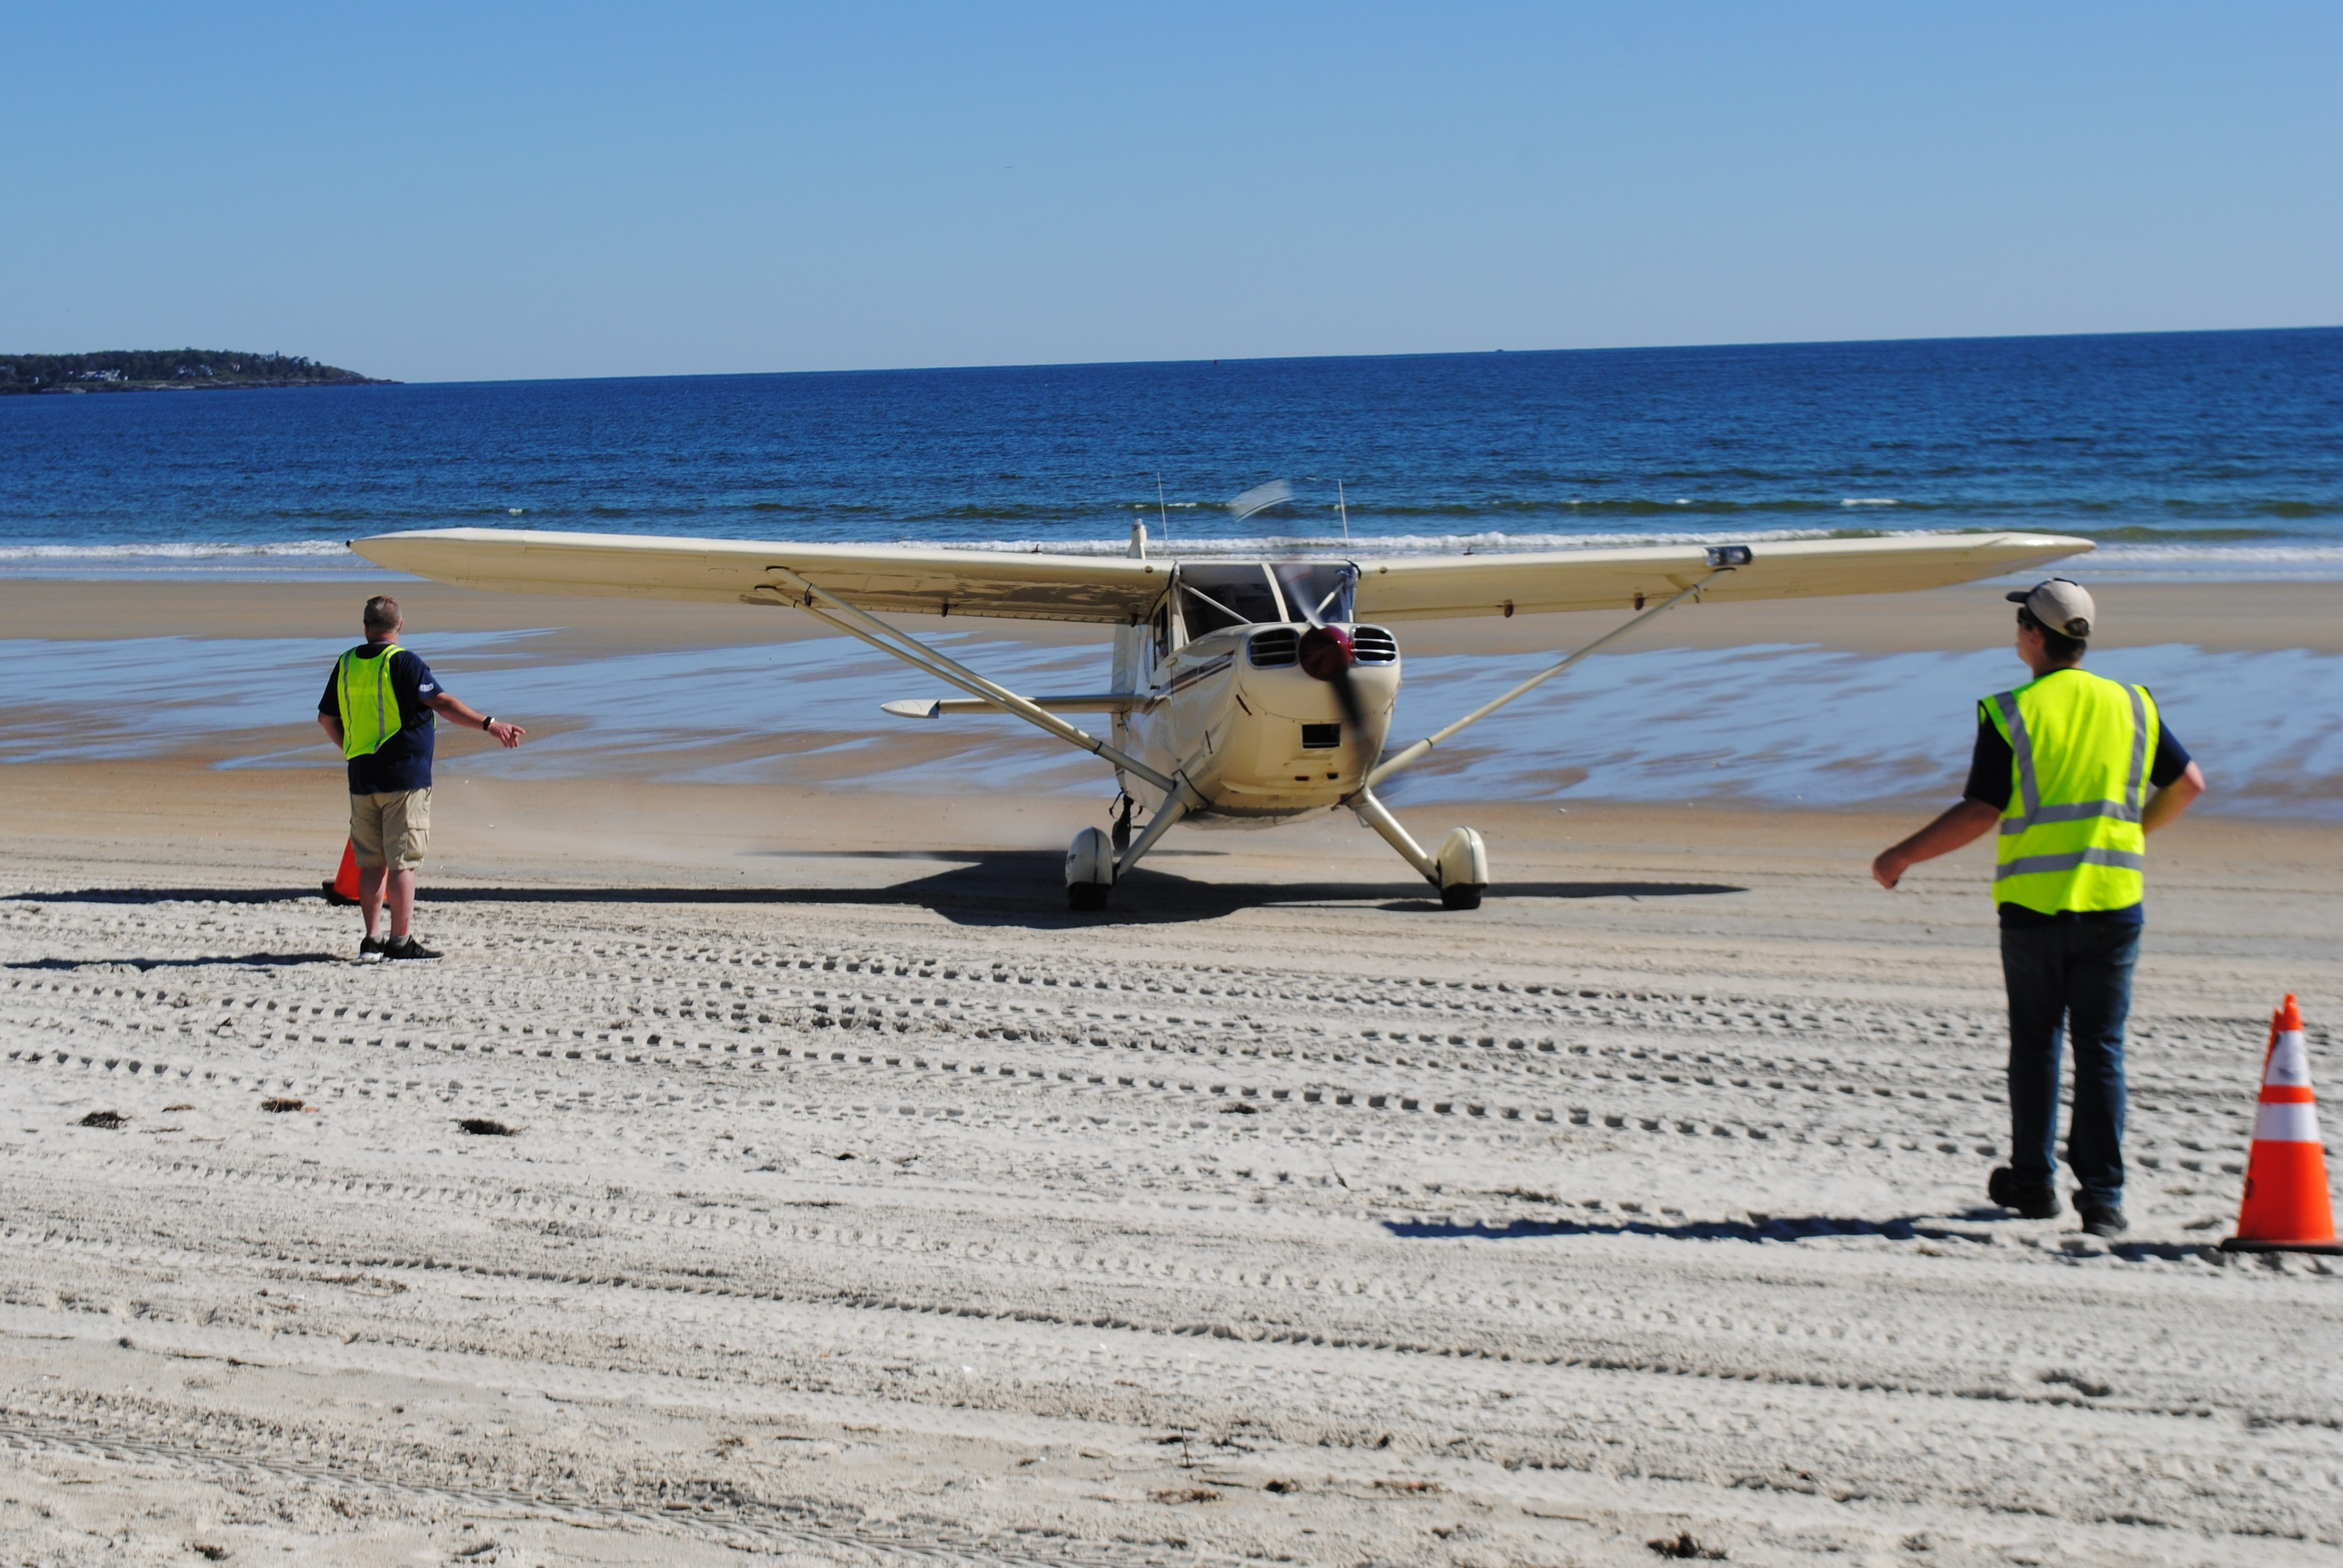 OOB365 member Israel Collins and Wings 4 Wishes organizer Chase Walker direct a plane on to the beach in Old Orchard Beach on Sunday. LIZ GOTTHELF/Journal Tribune